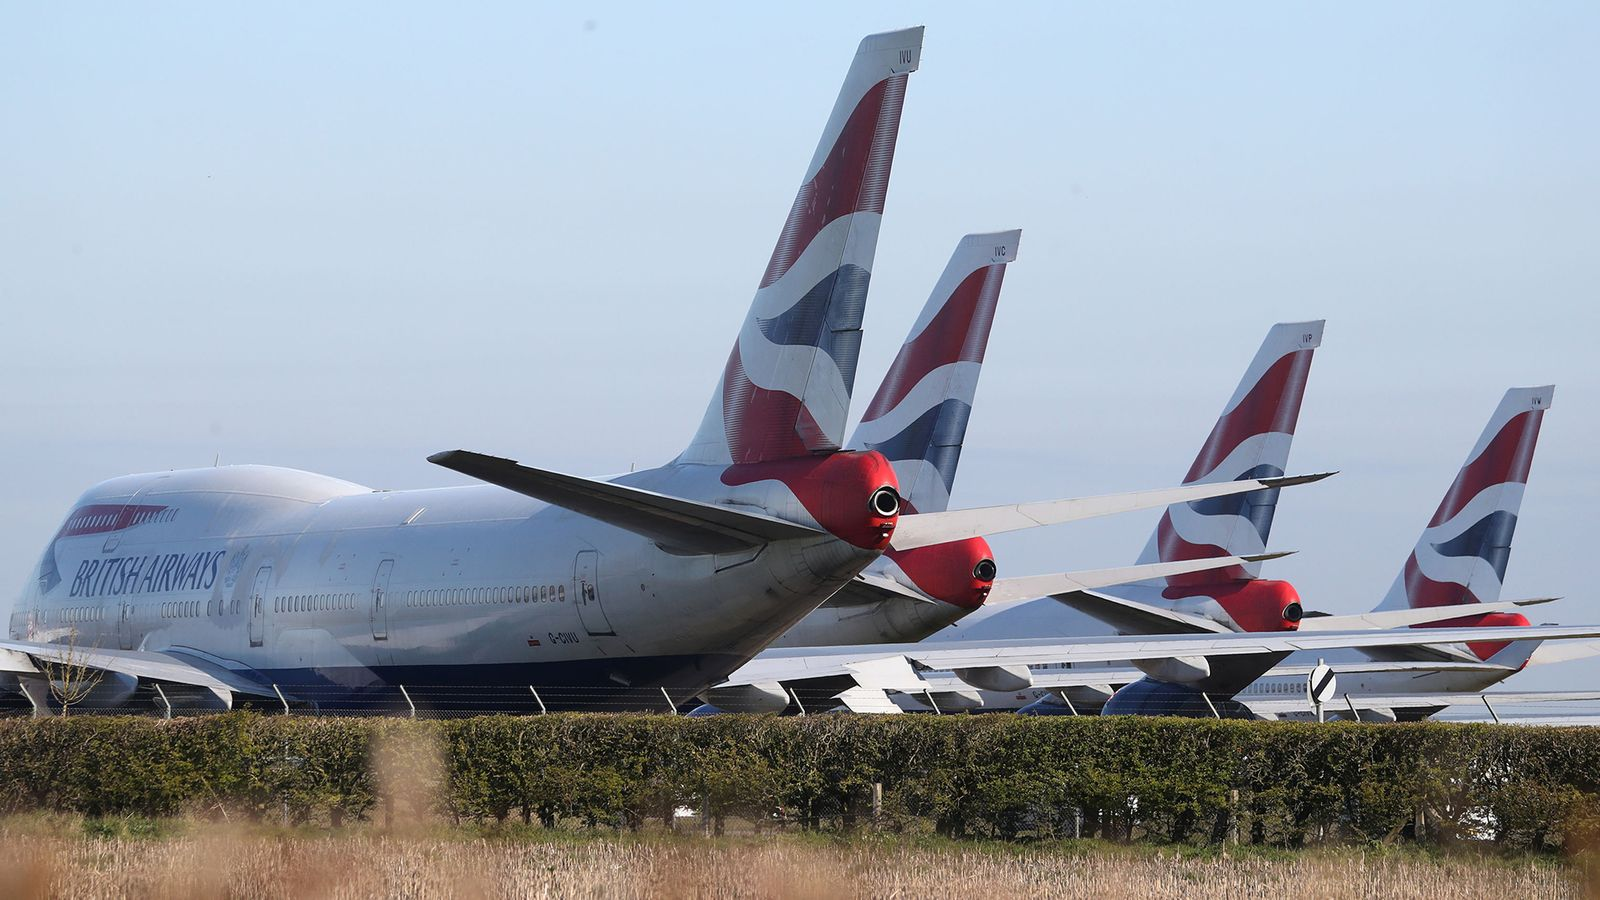 MPs: Behaviour of British Airways towards workers a 'national disgrace' | Business News